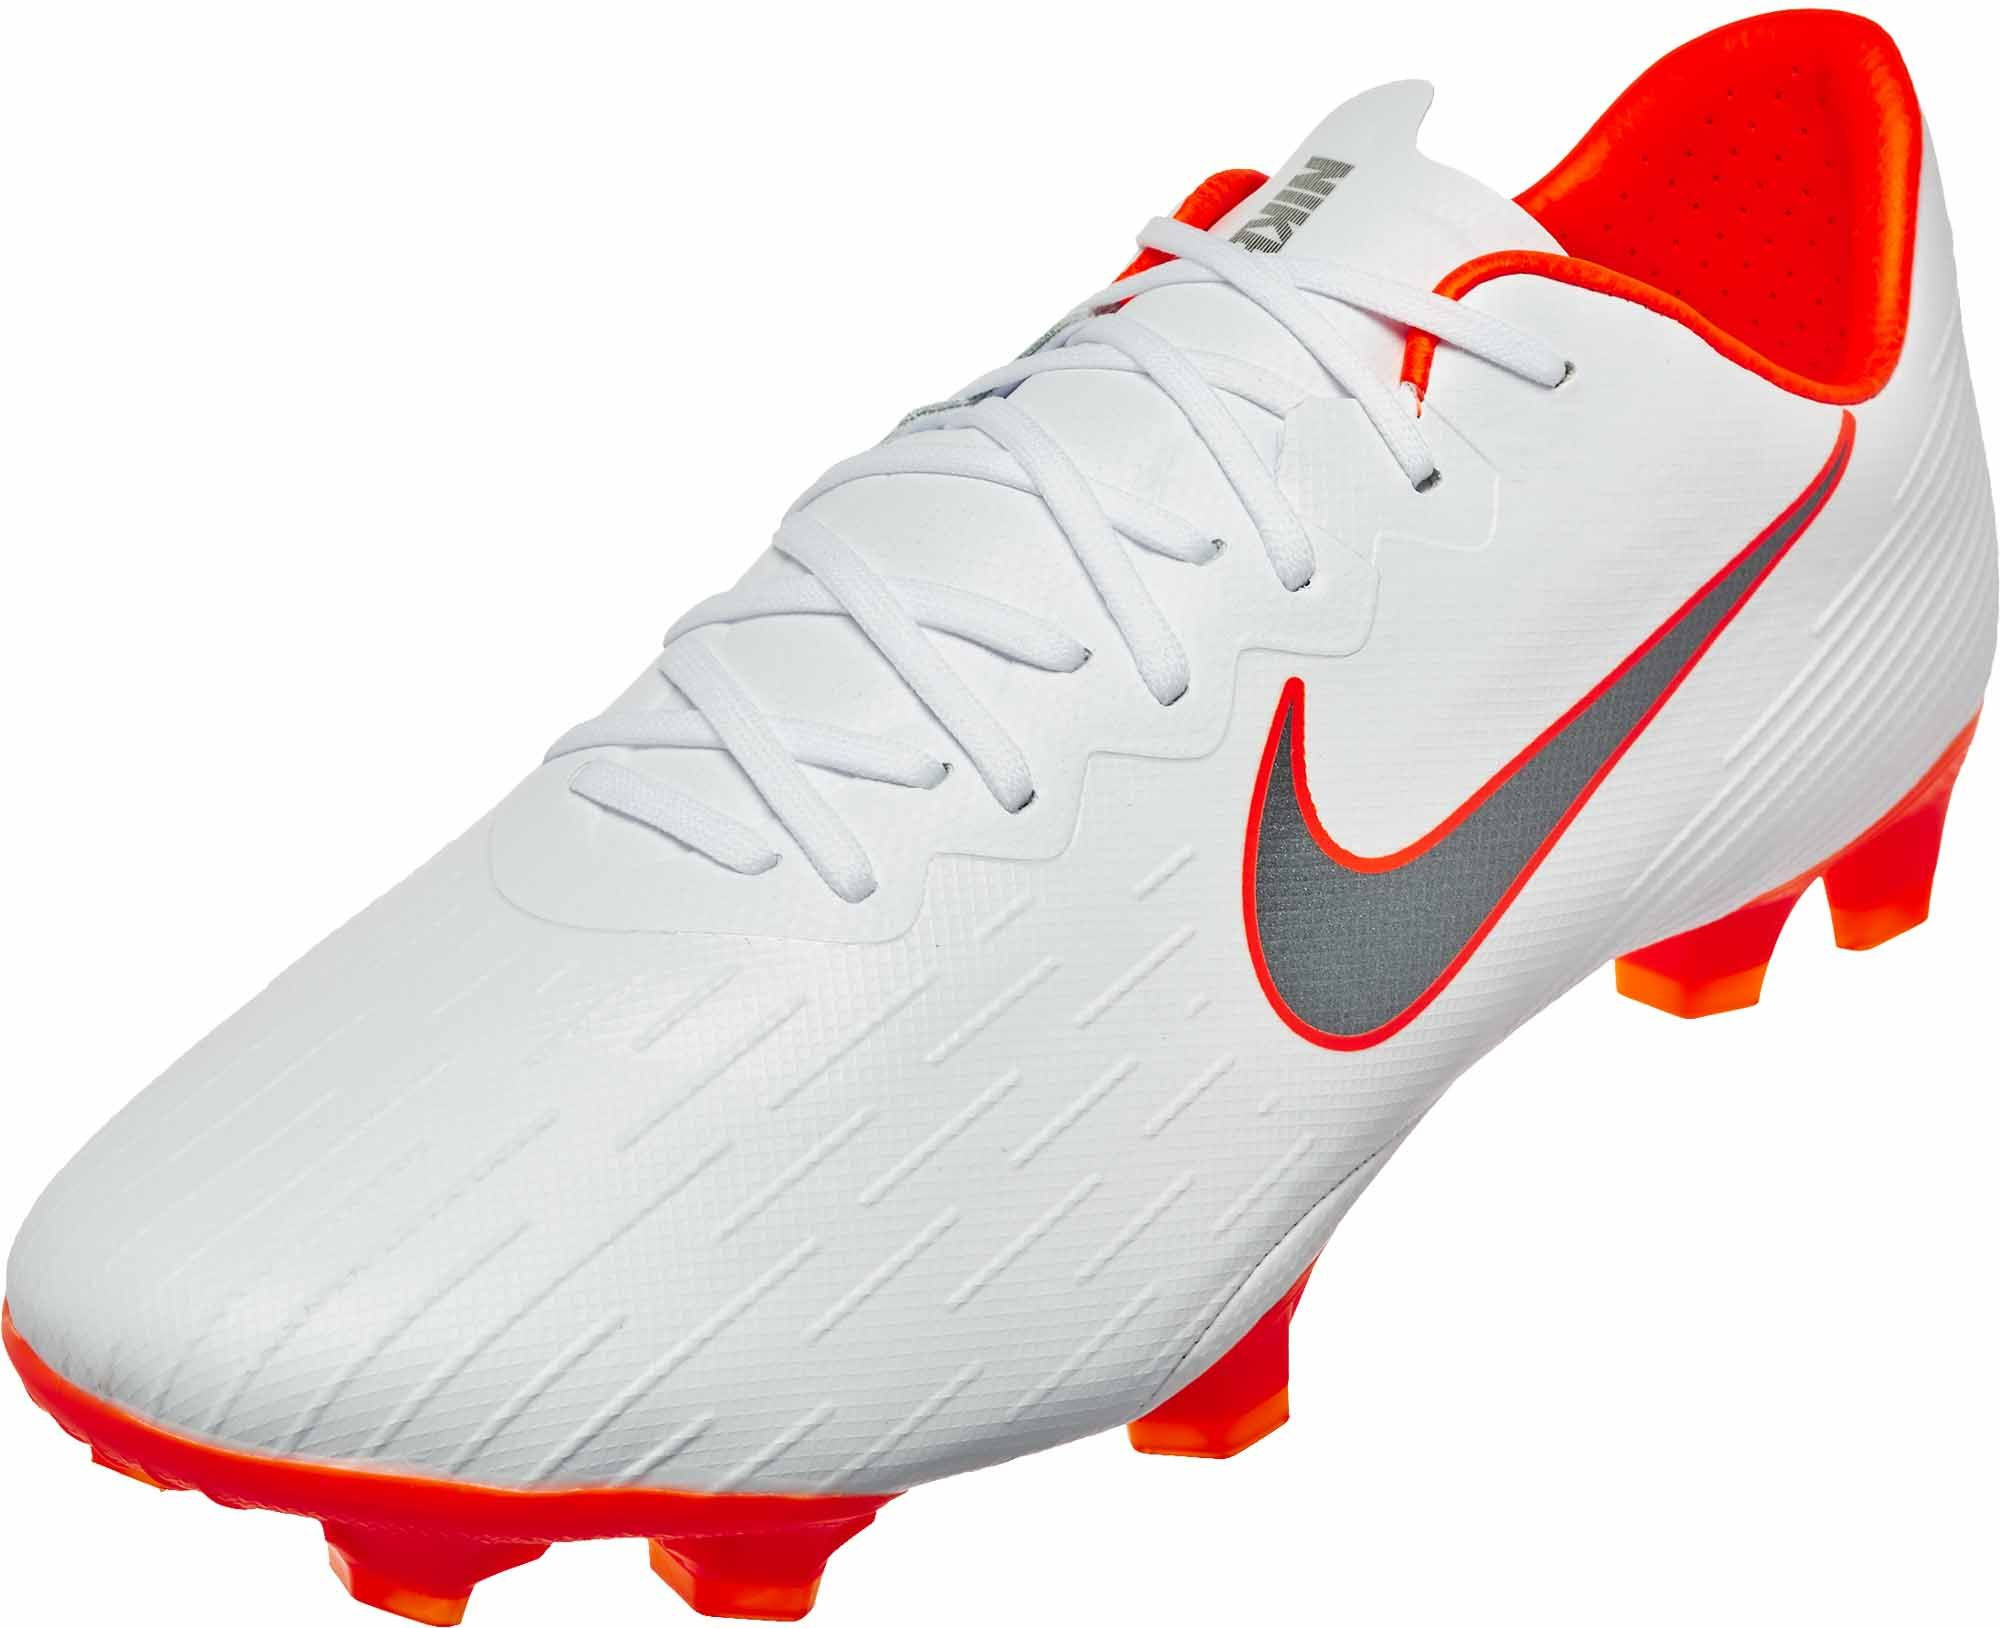 Just Do It pack Nike Mercurial Vapor 12 Pro. Buy yours from SoccerPro. 4507e36586d